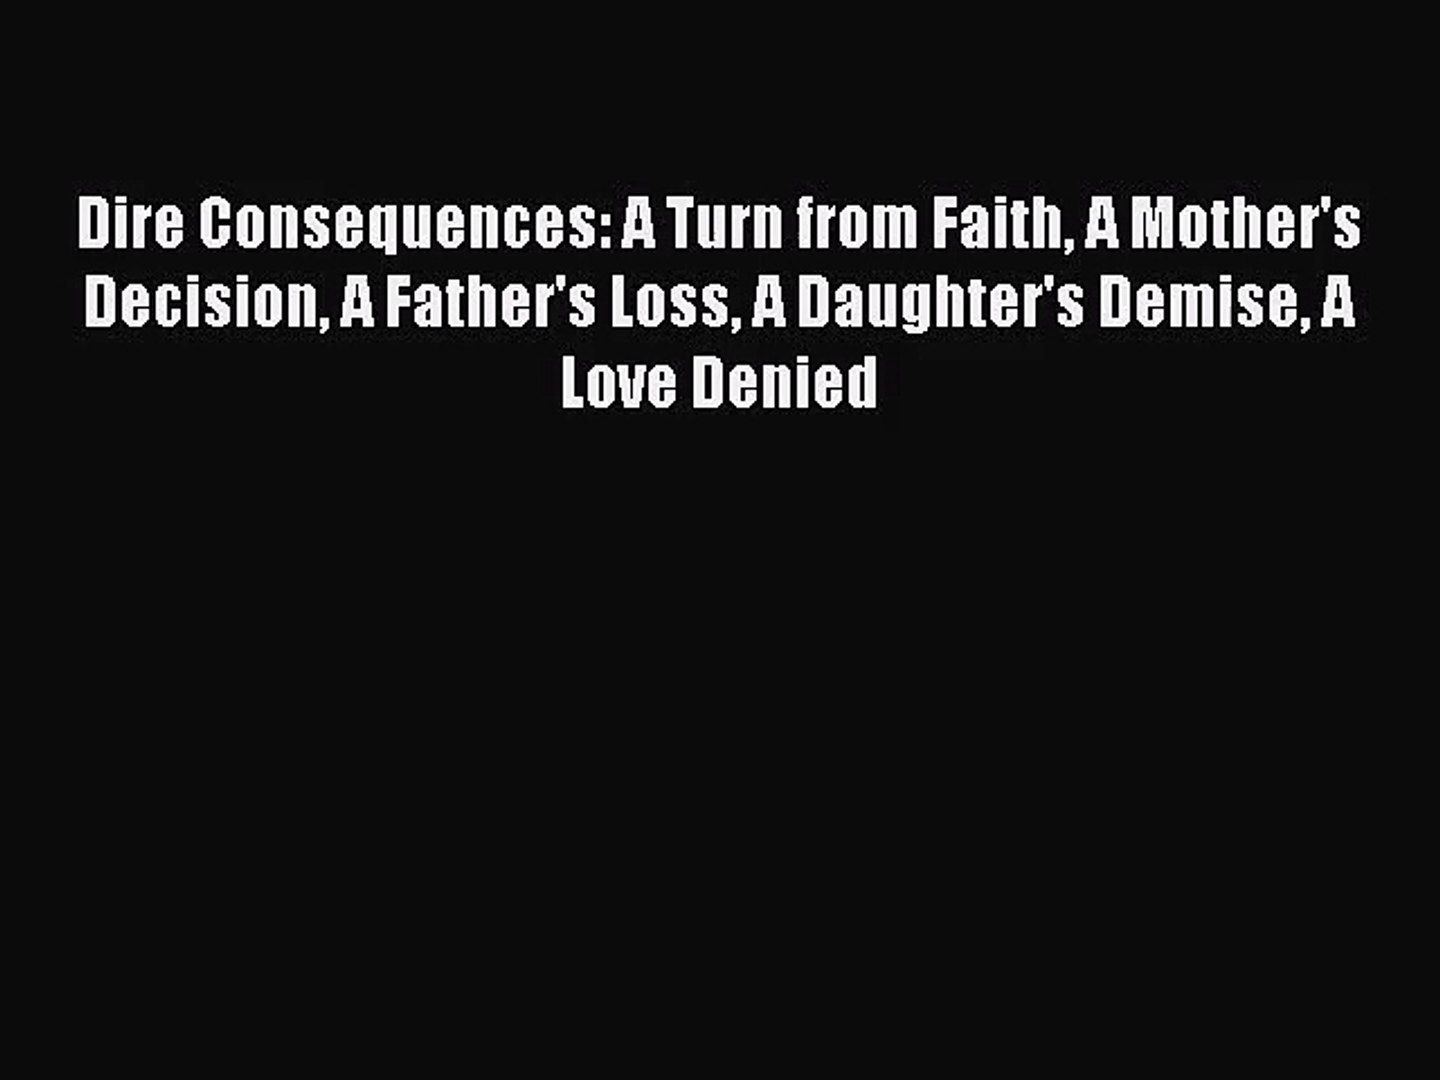 Dire Consequences: A Turn from Faith A Mother's Decision A Father's Loss A Daughter's